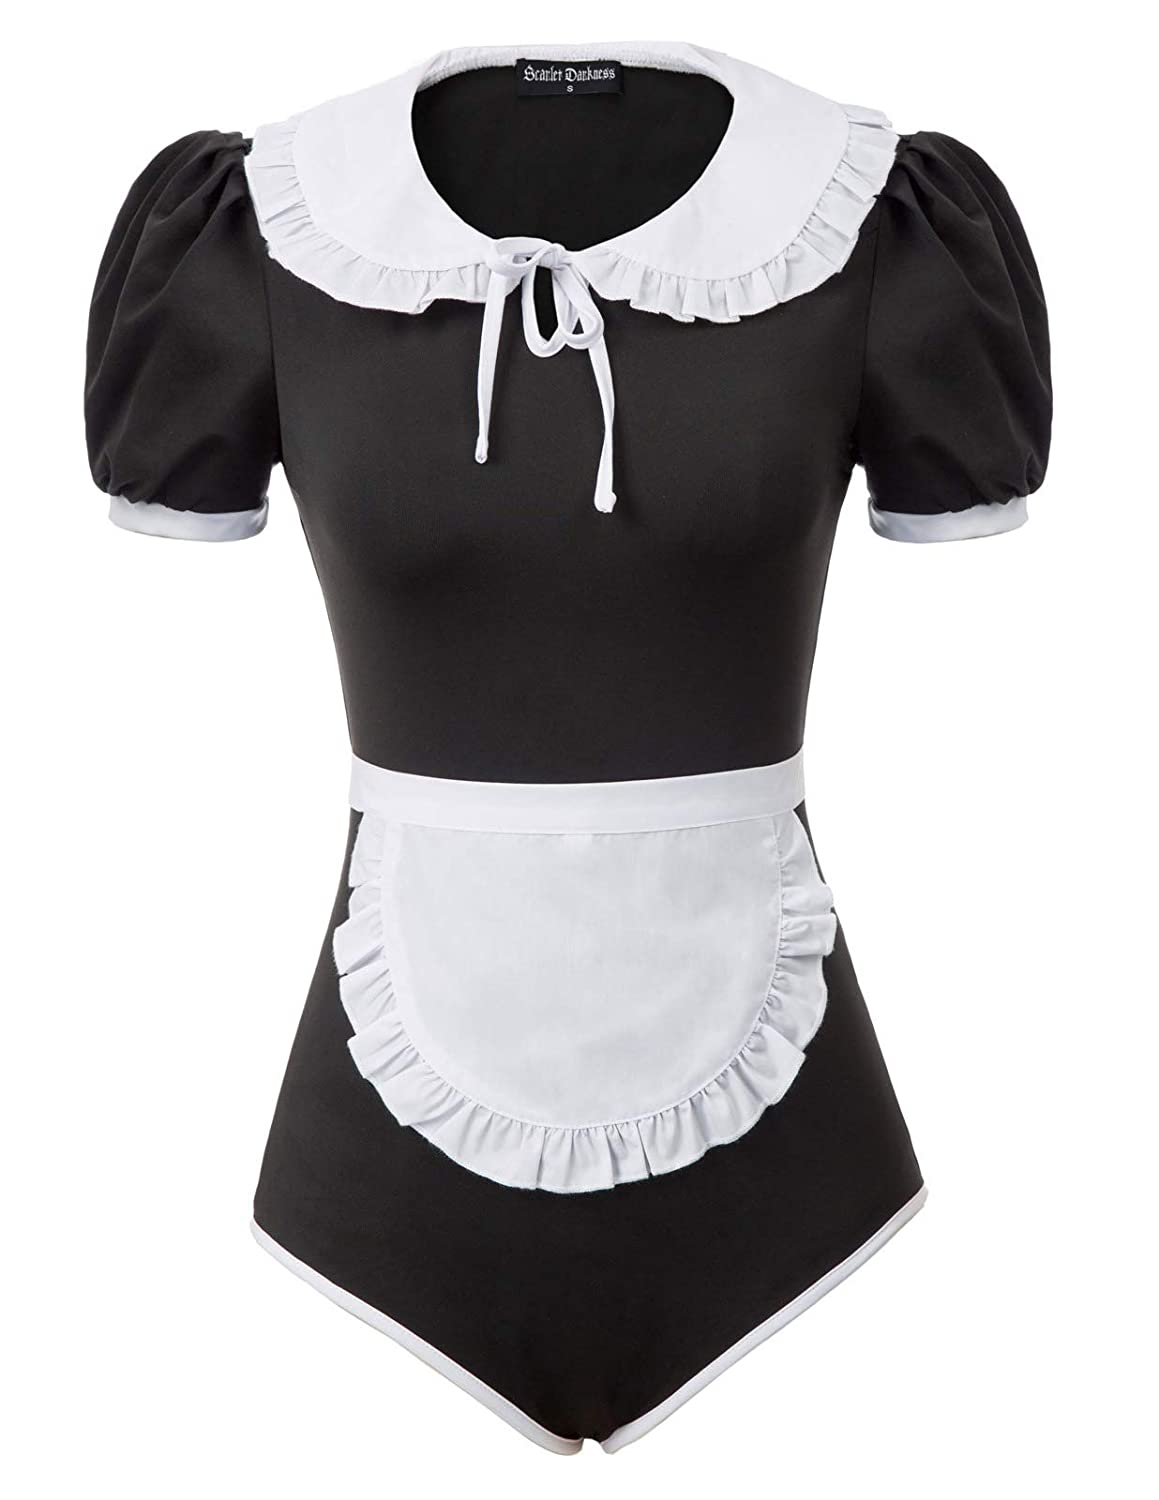 SCARLET DARKNESS Women Short Sleeve Bodysuit Lapel Collar Leotard Maid Suit